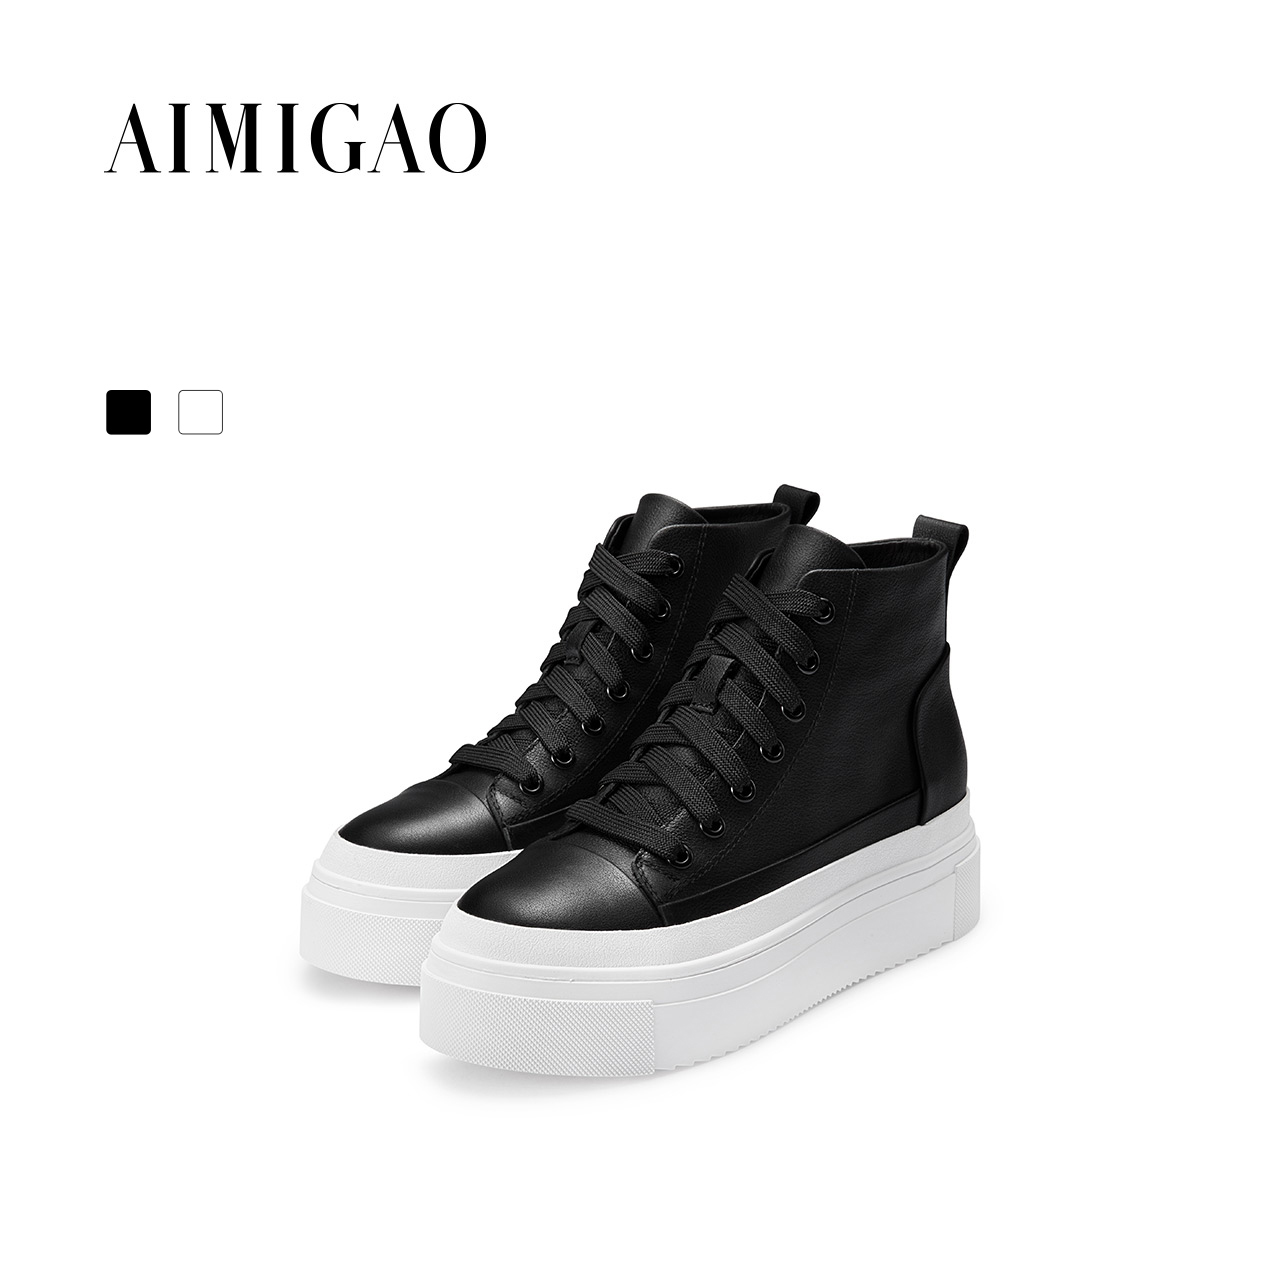 AIMIGAO Cowhide leather casual white shoes women 2017 autumn new fashion Lace-up women shoes comfortable thick bottom flat shoes разглаживающая морщины и устраняющая сухость сыворотка 30 мл janssen inspira